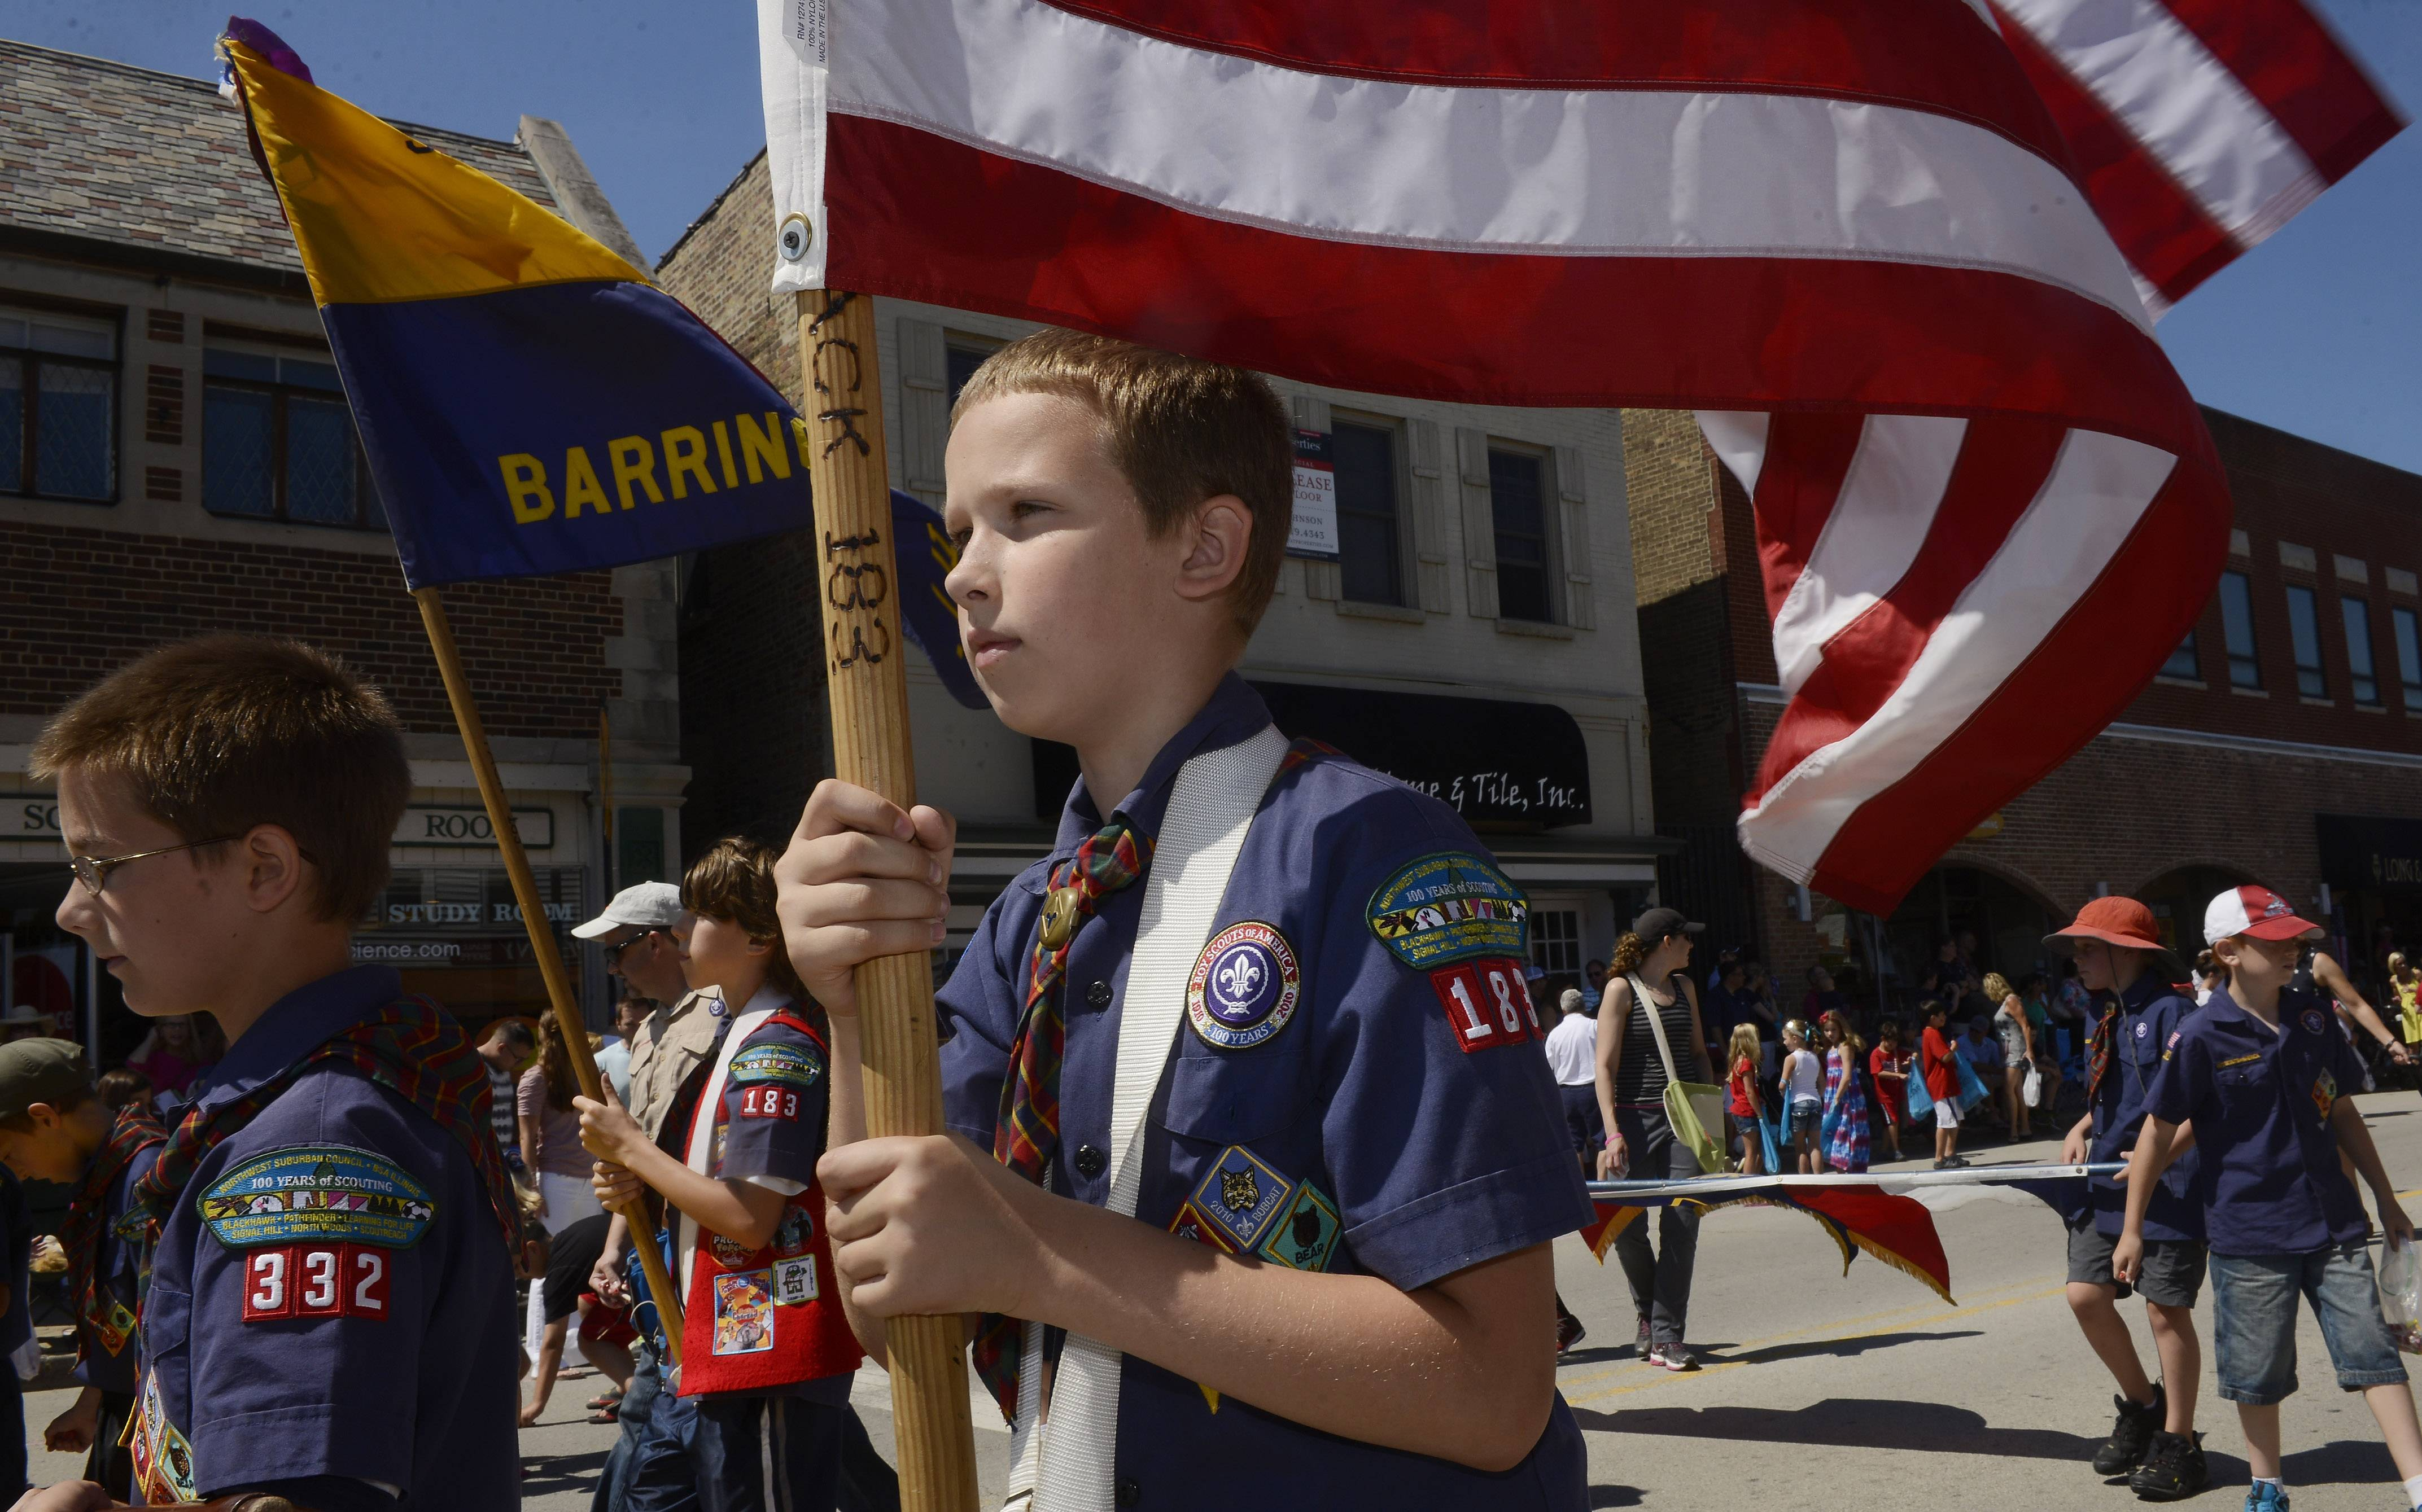 Alex Ziegler, 10, of Cub Scout Troop 183 carries the United States flag during the Barrington Fourth of July parade Friday.